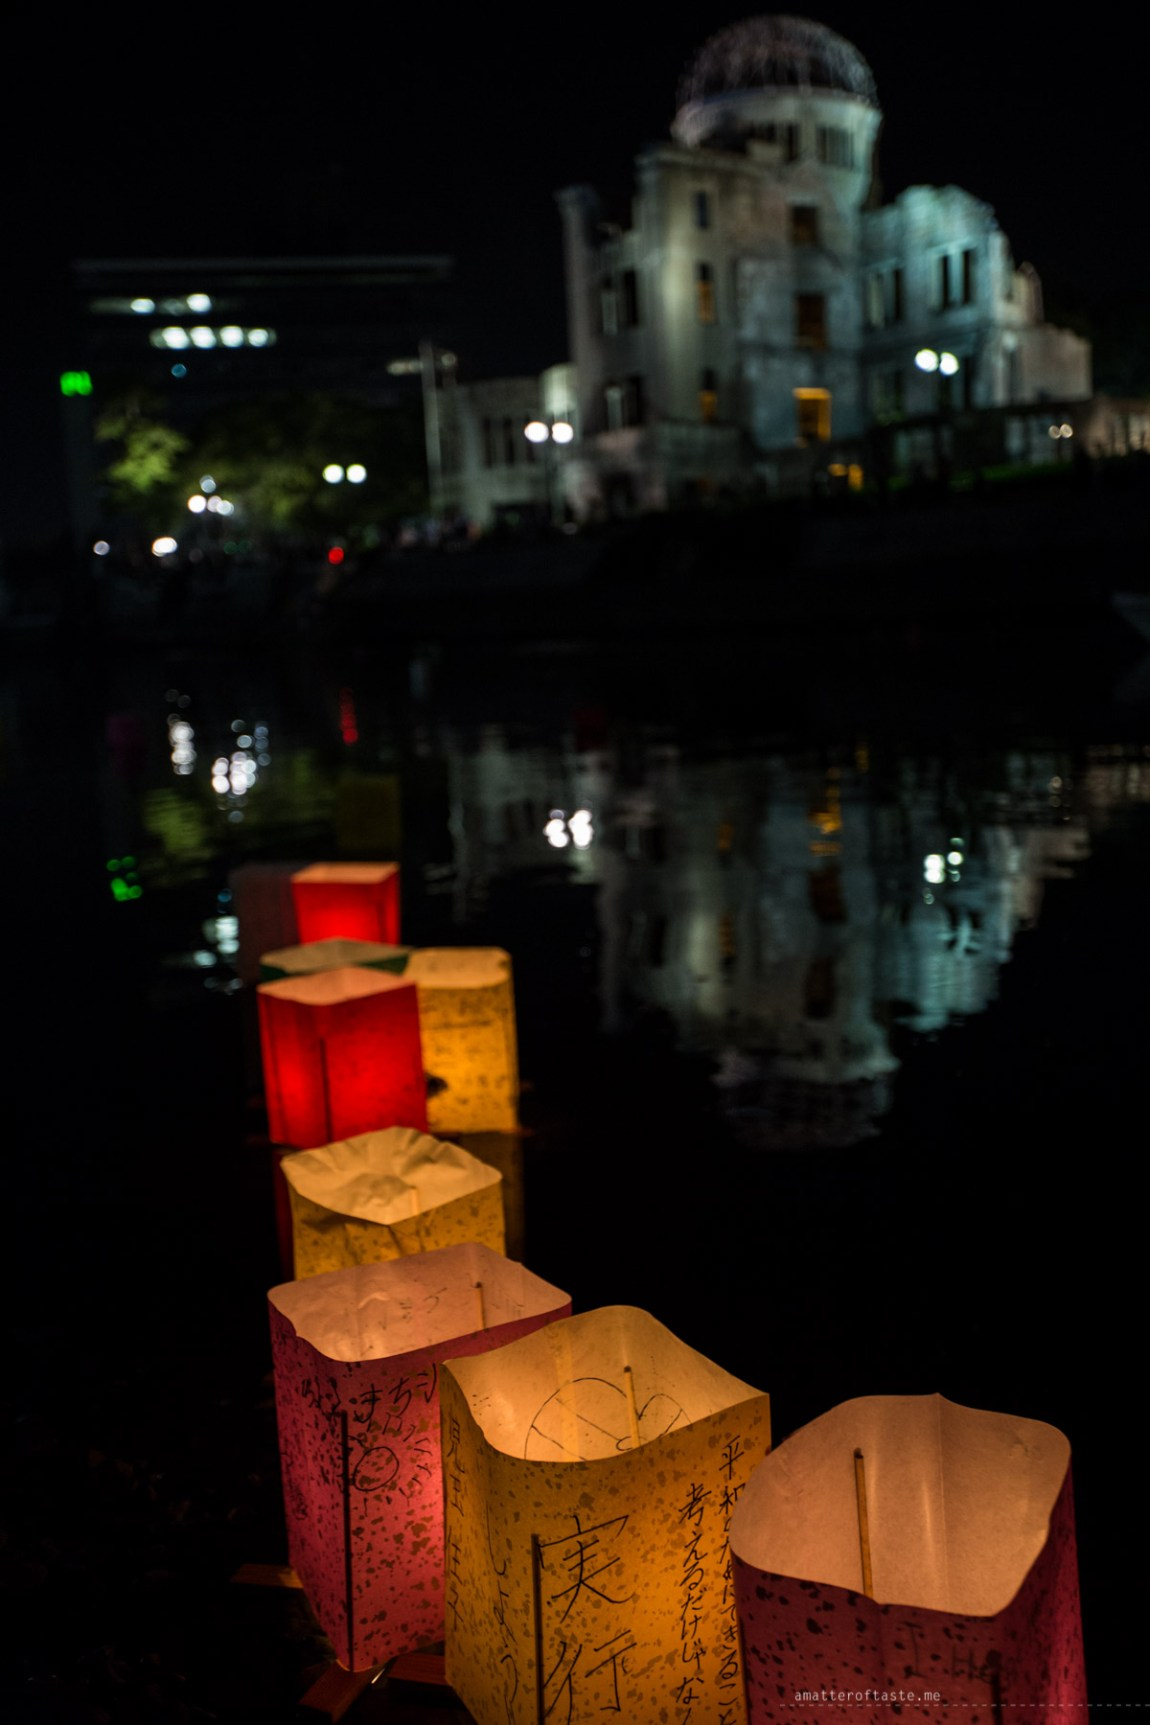 lantern floating ceremony hiroshima 70th anniversary